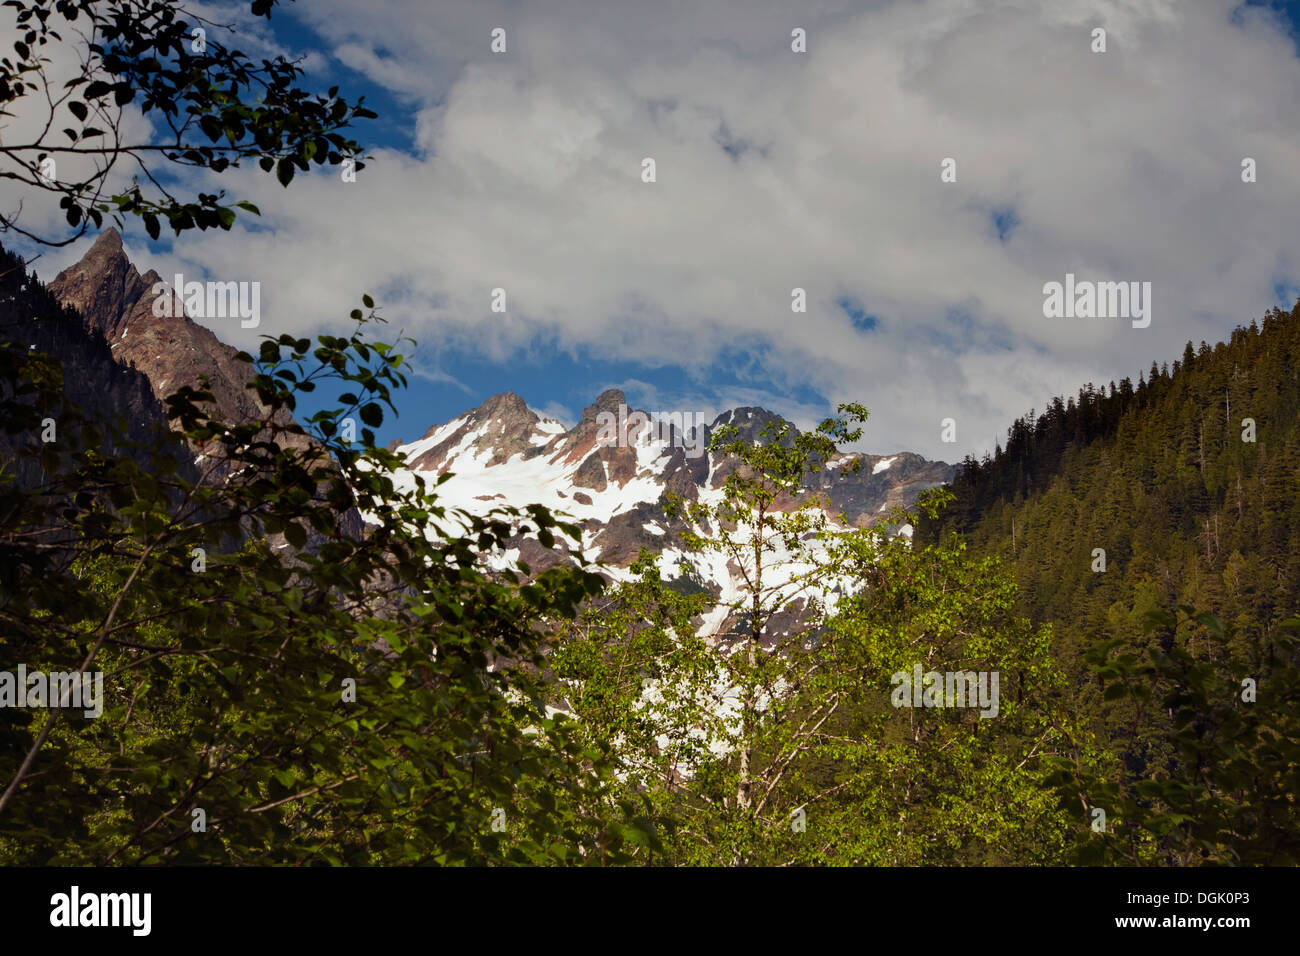 WASHINGTON - Mount Anderson at the upper end of the Enchanted Valley in Olympic National Park. - Stock Image